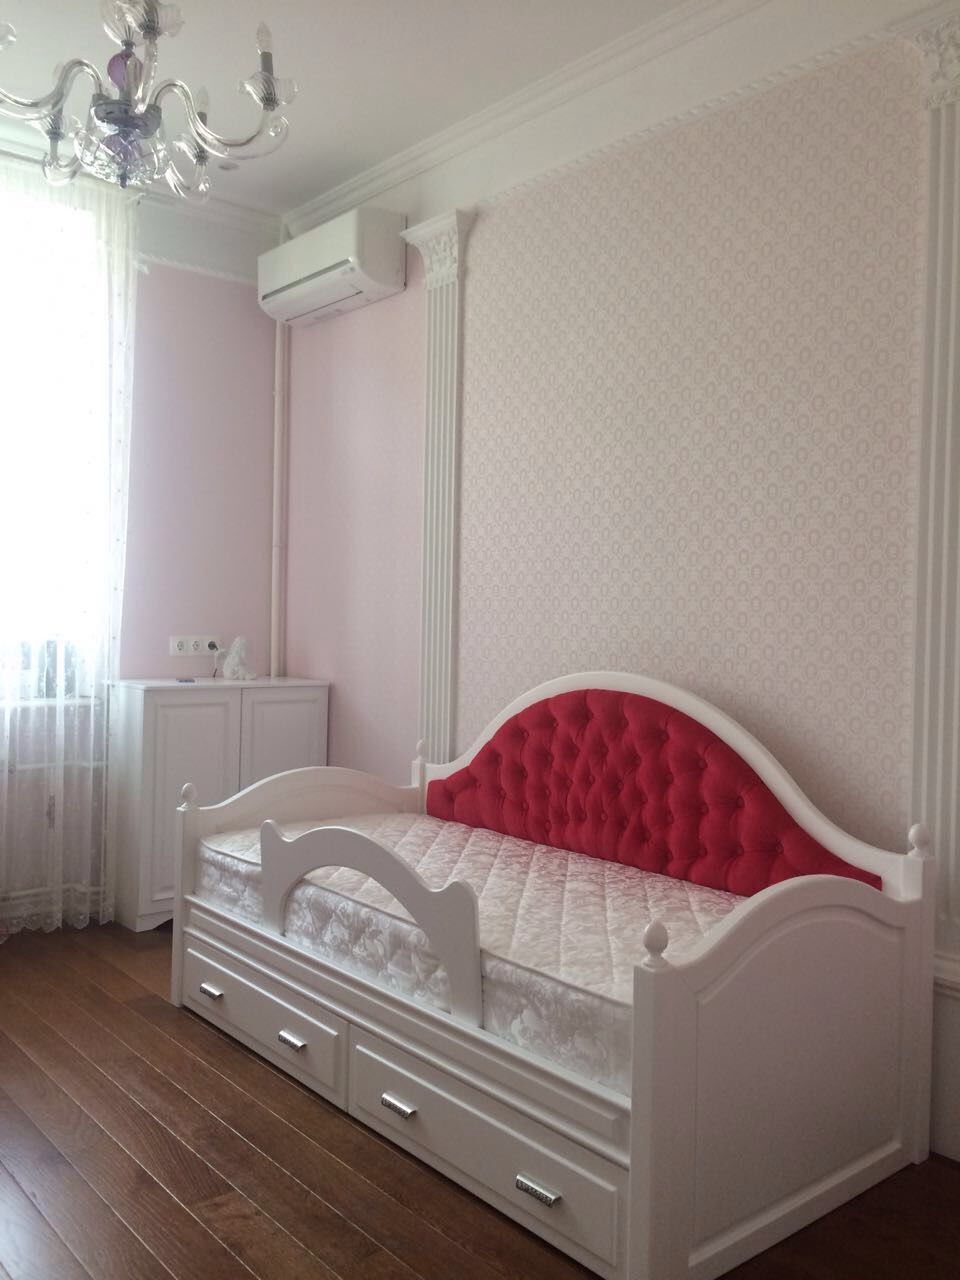 Cozy children's bed with upholstered headboard. Has a removable fence for child safety. At the bottom of the bed there are two roll-out drawers for storage. The difference in color,size, materials is